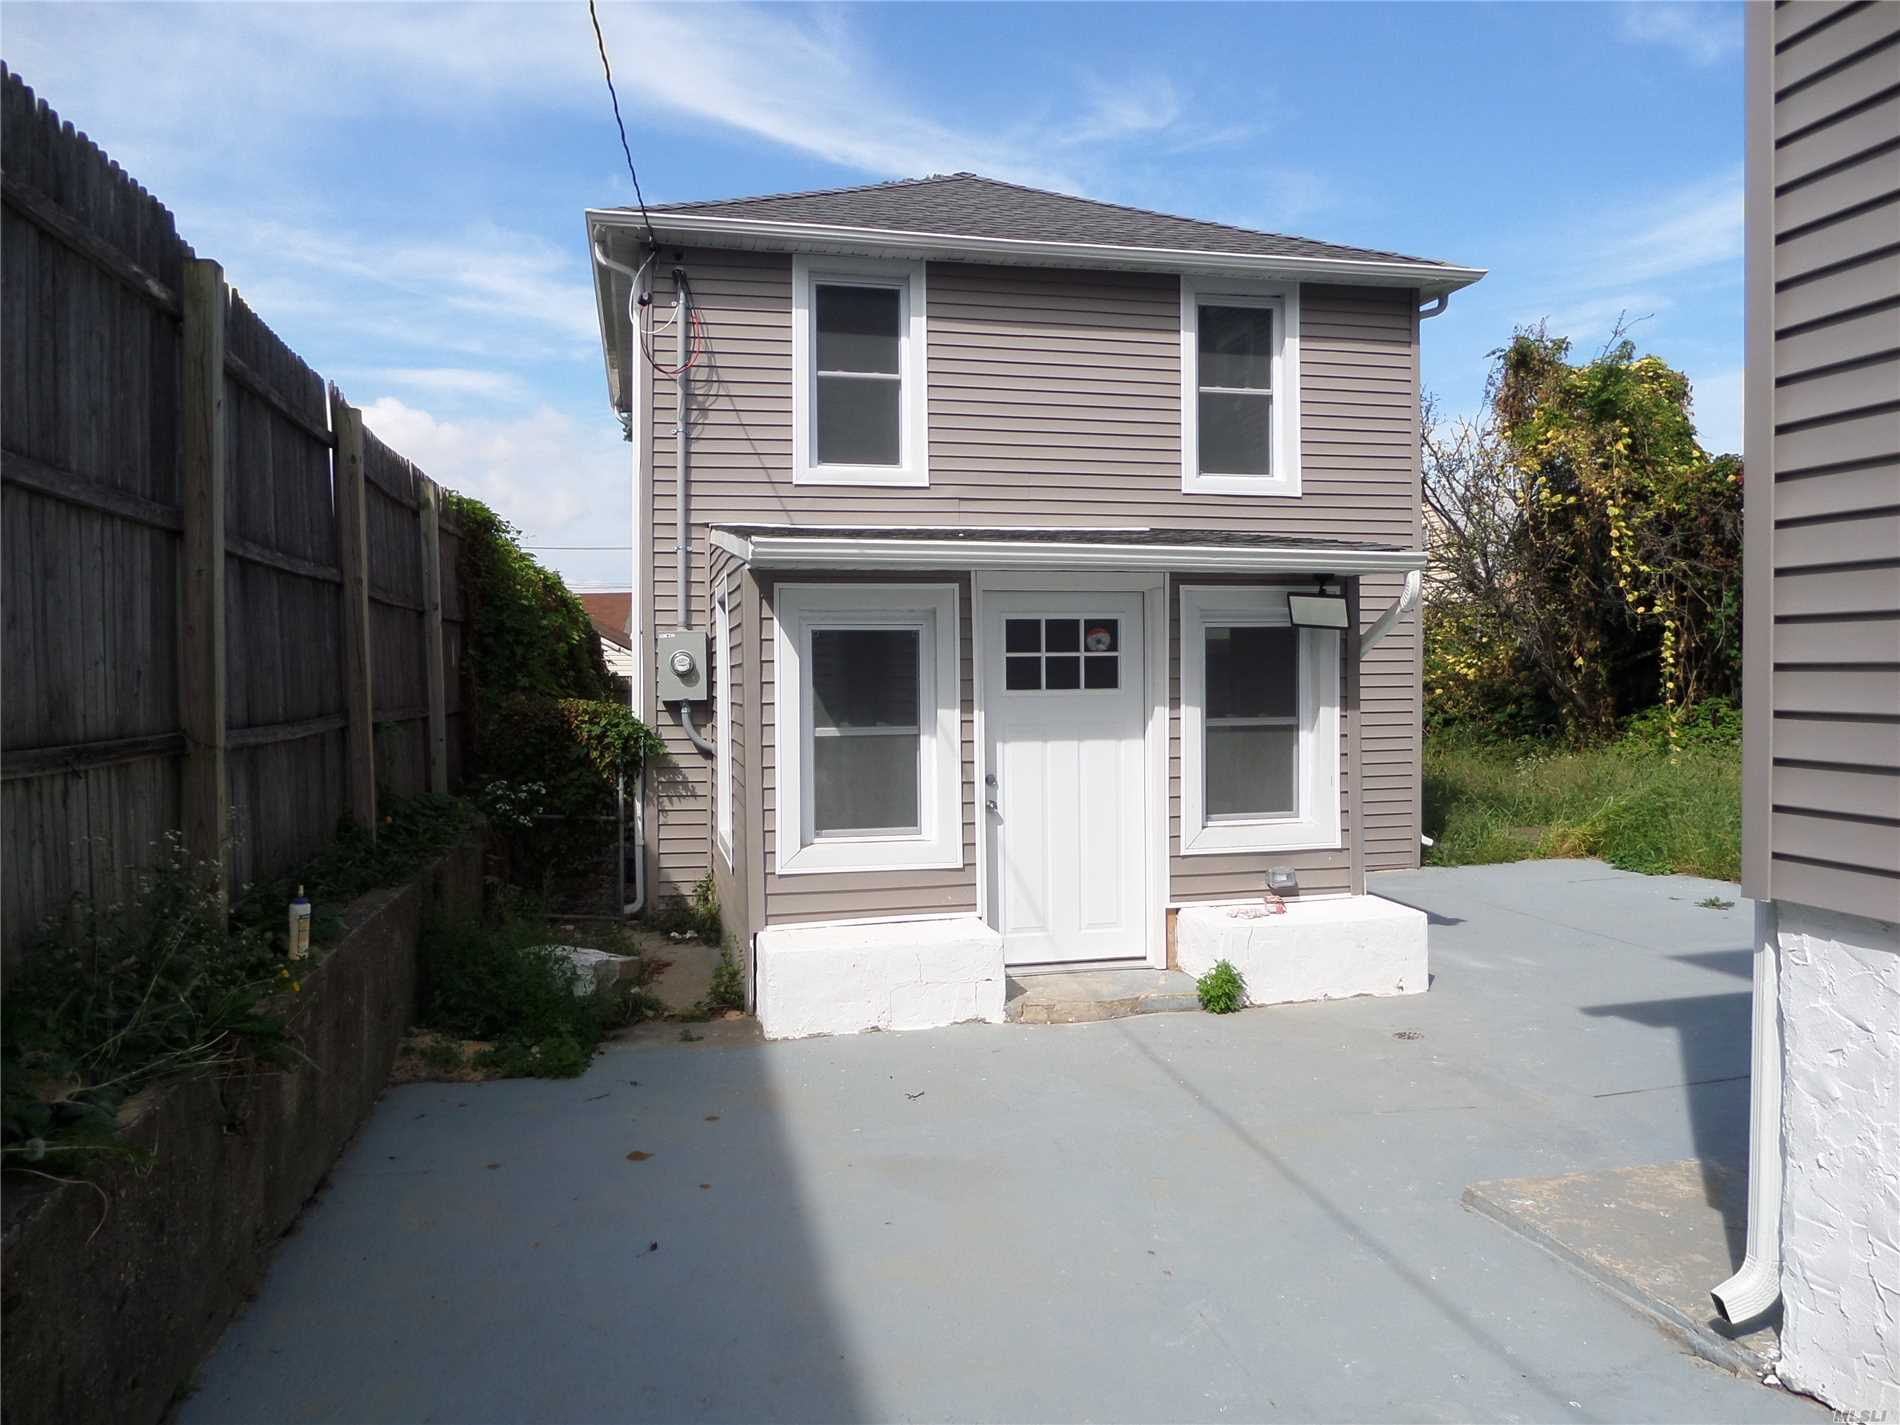 Gut Renovated Duplex Carriage House With Granite And Wood Kitchen, Wd Hookup, Hardwood Floors.